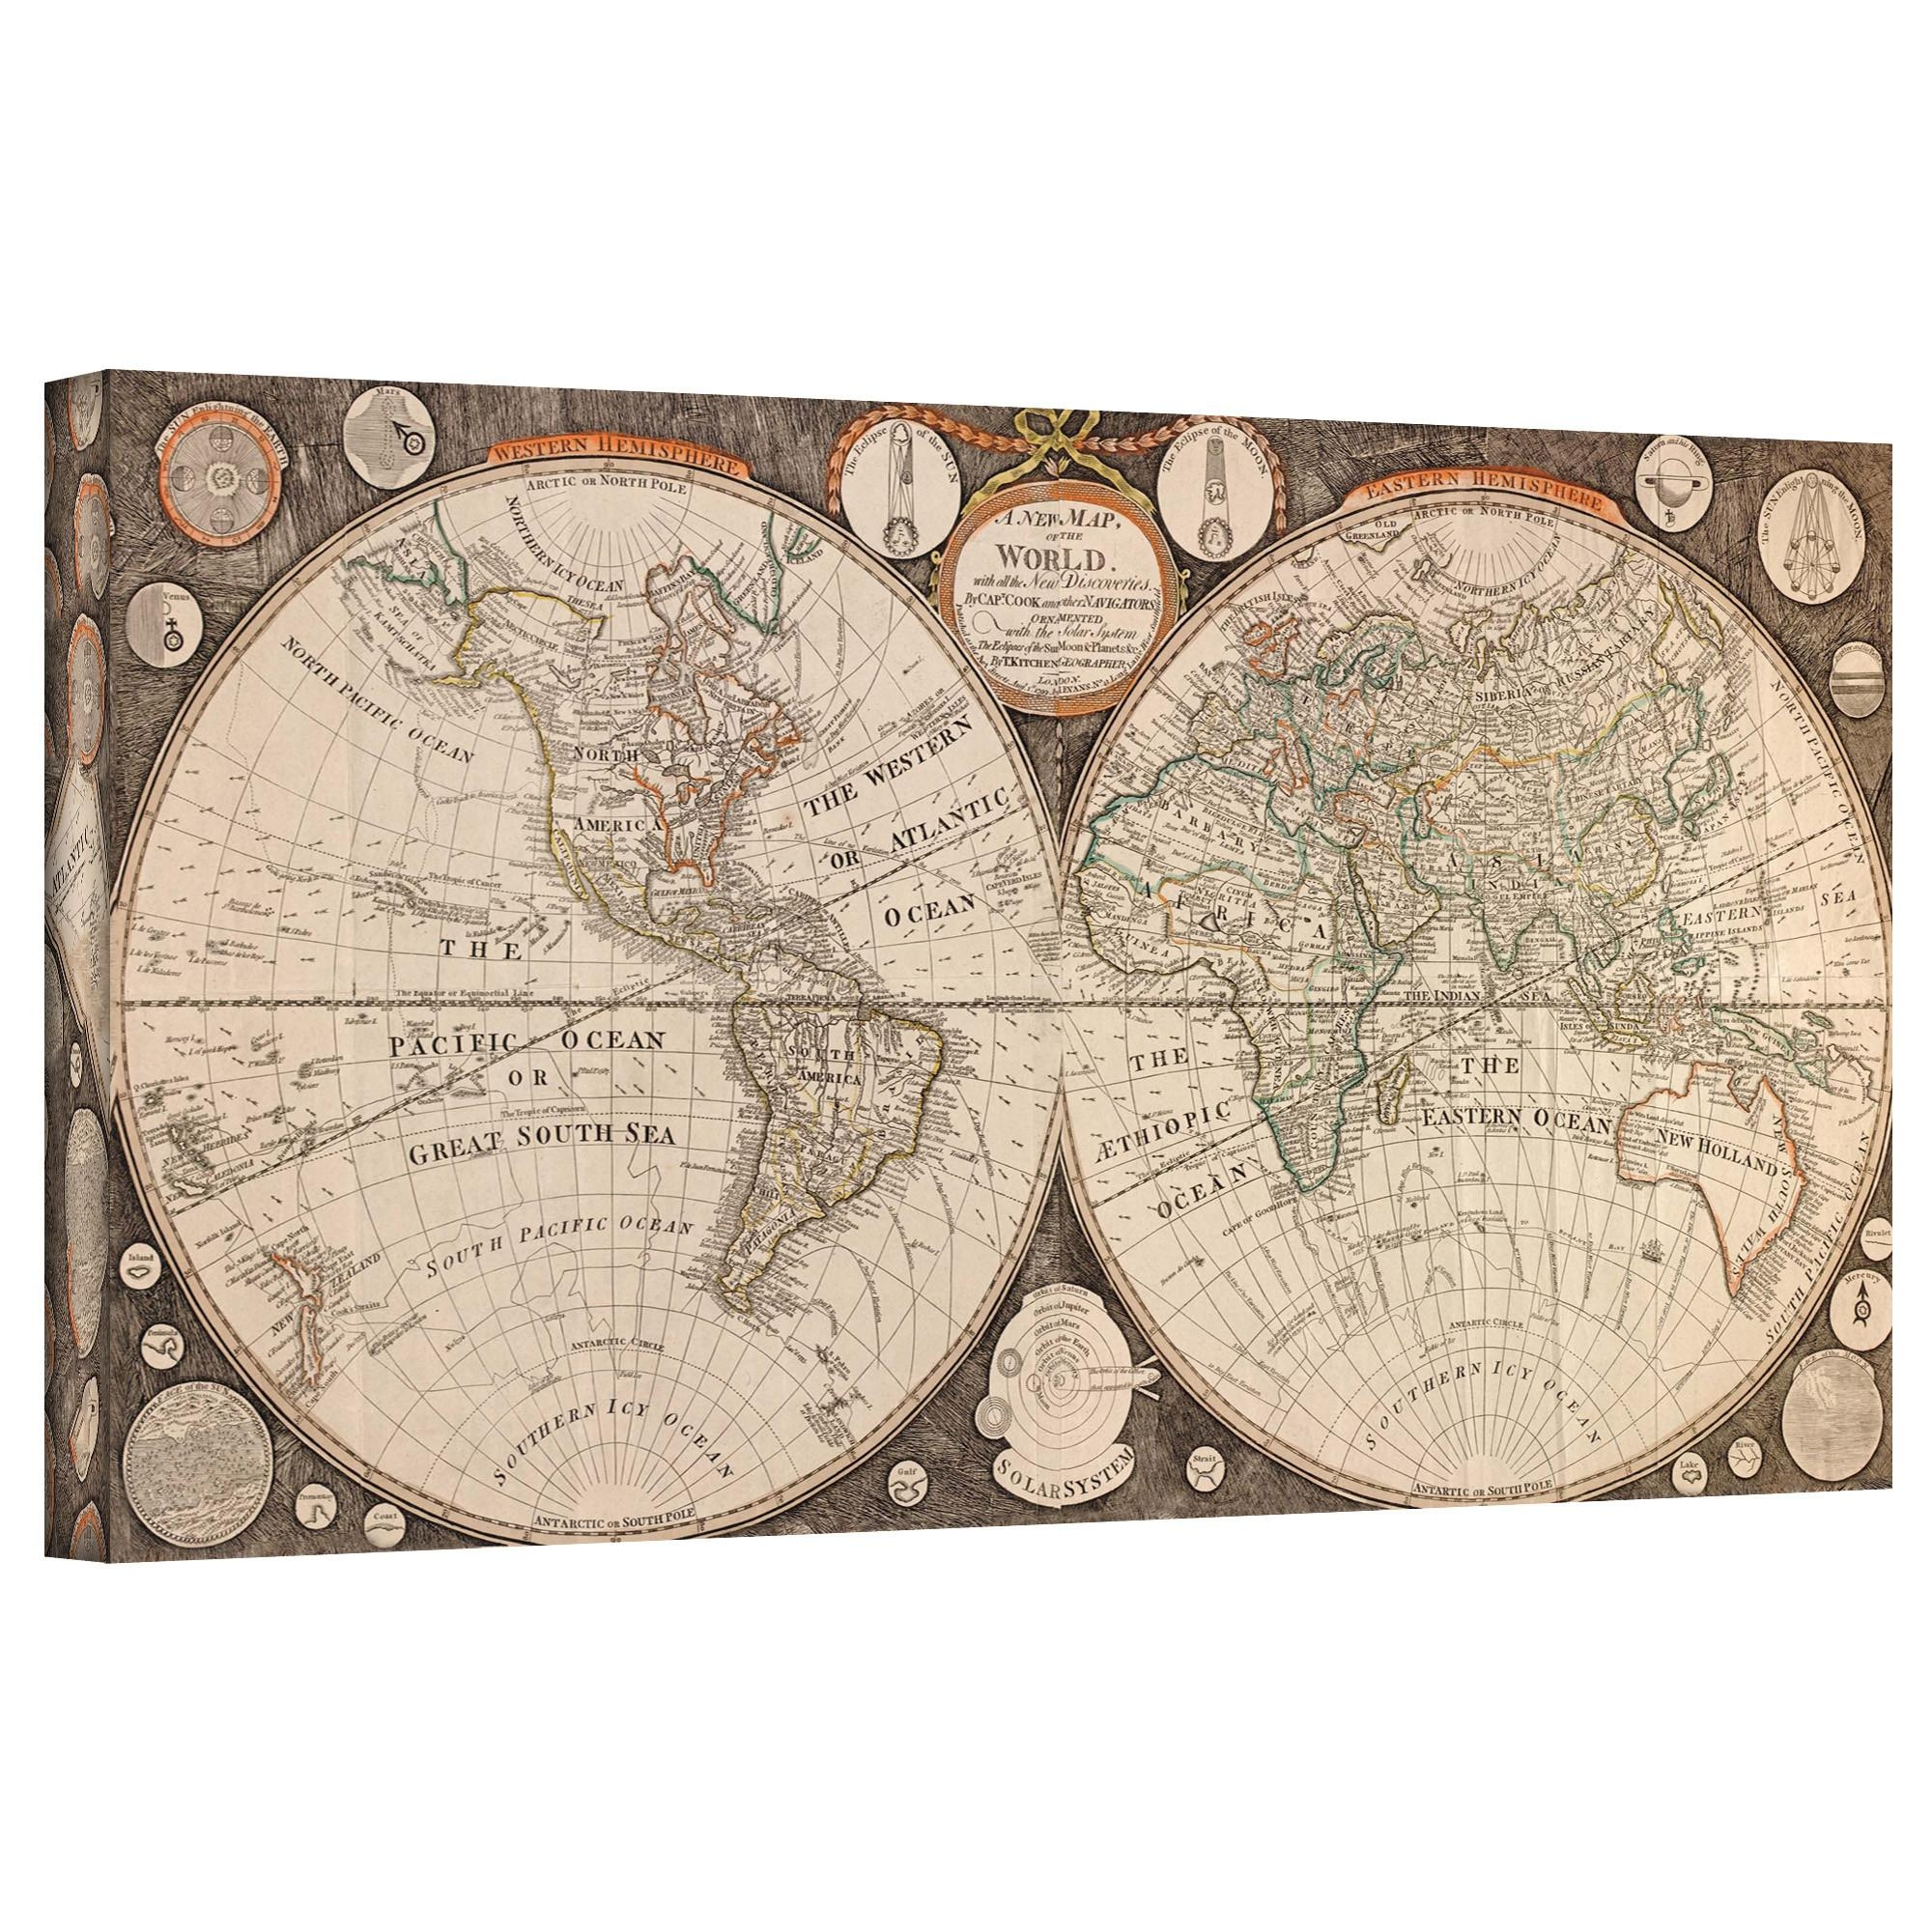 Wall Art Designs: Wonderful Home Decor Vintage Maps Wall Art For Vintage Map Wall Art (Image 18 of 20)